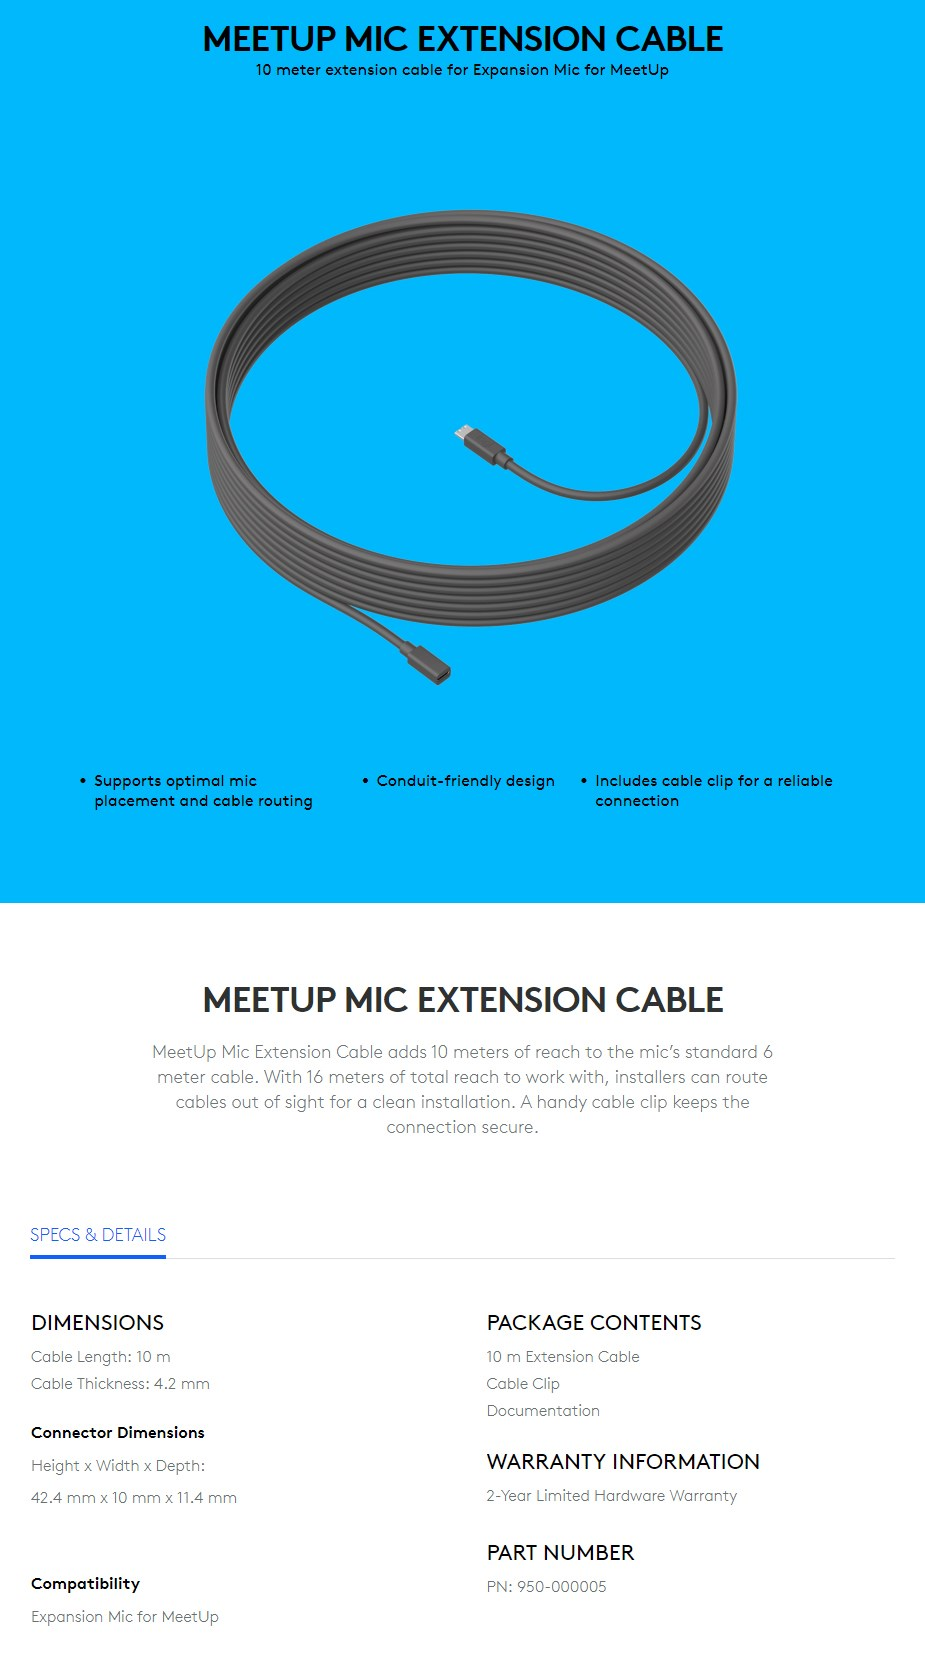 Logitech MeetUp Mic 10m Extension Cable - Overview 1